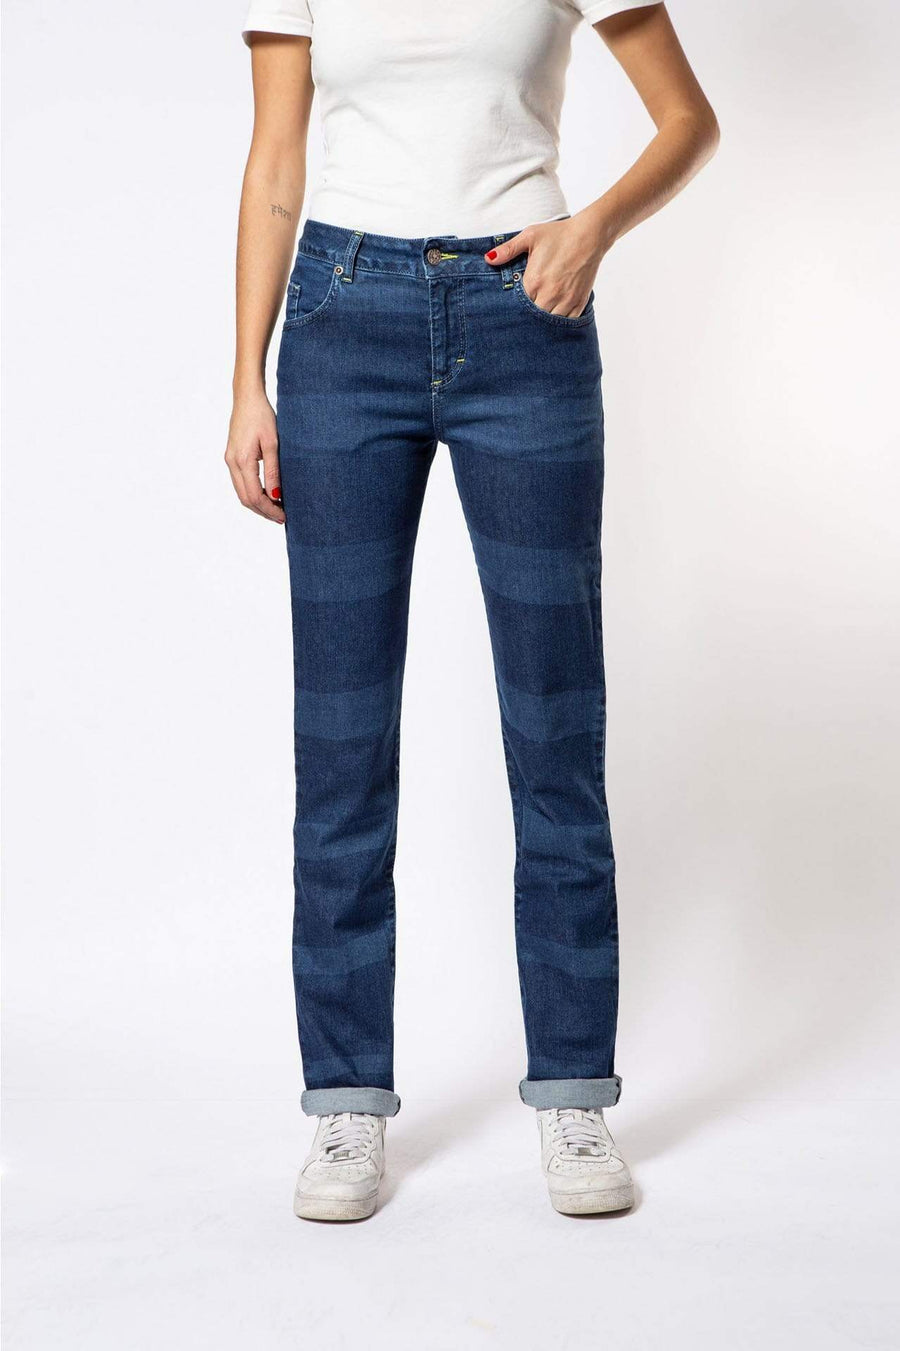 Par.co DENIM Woman Viola Straight Jeans bærekraftig moteetisk mote